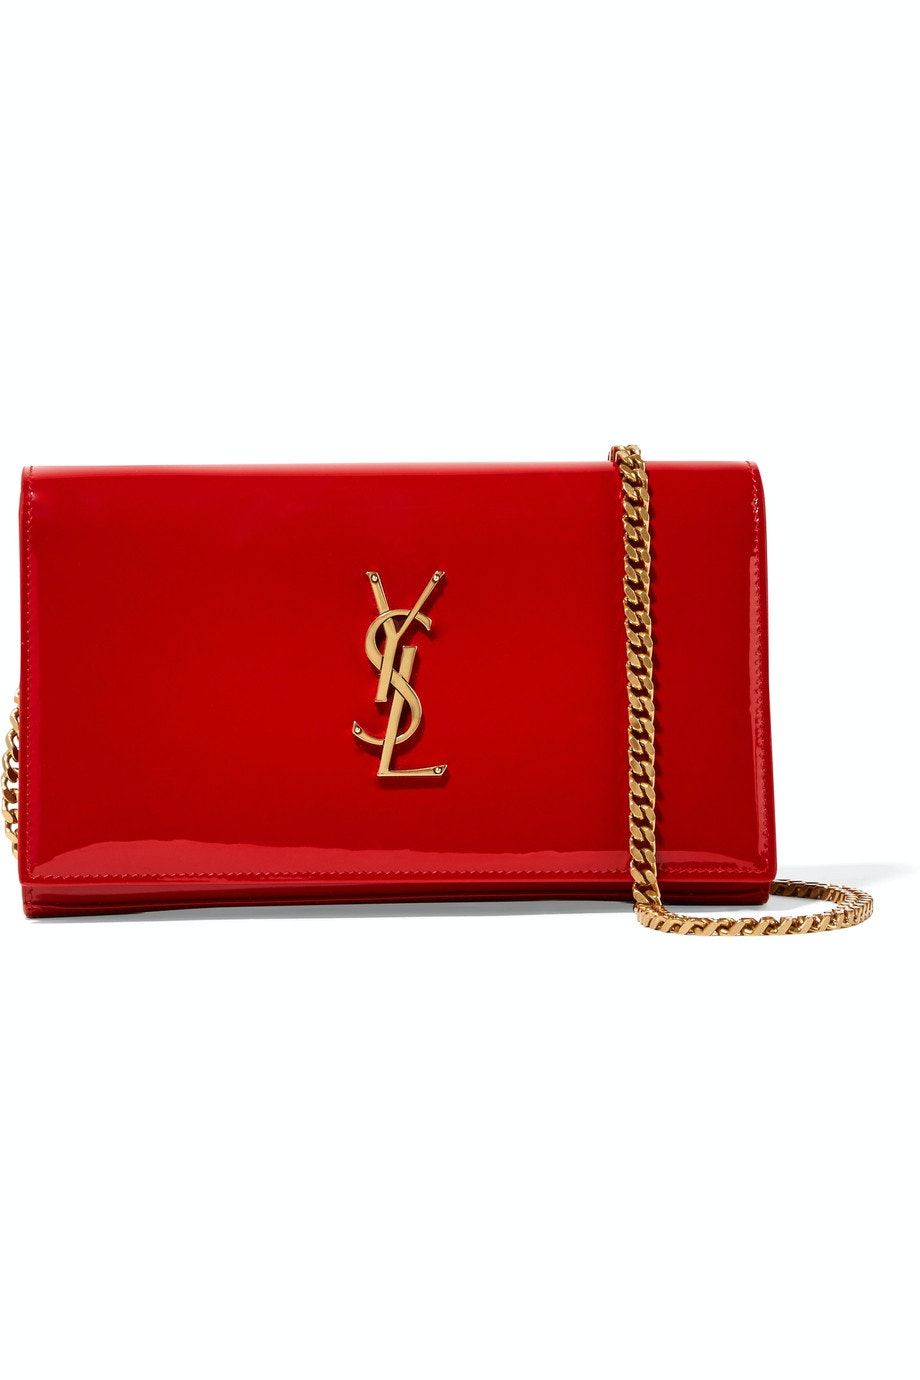 Saint Laurent Kate Patent Leather Small Red